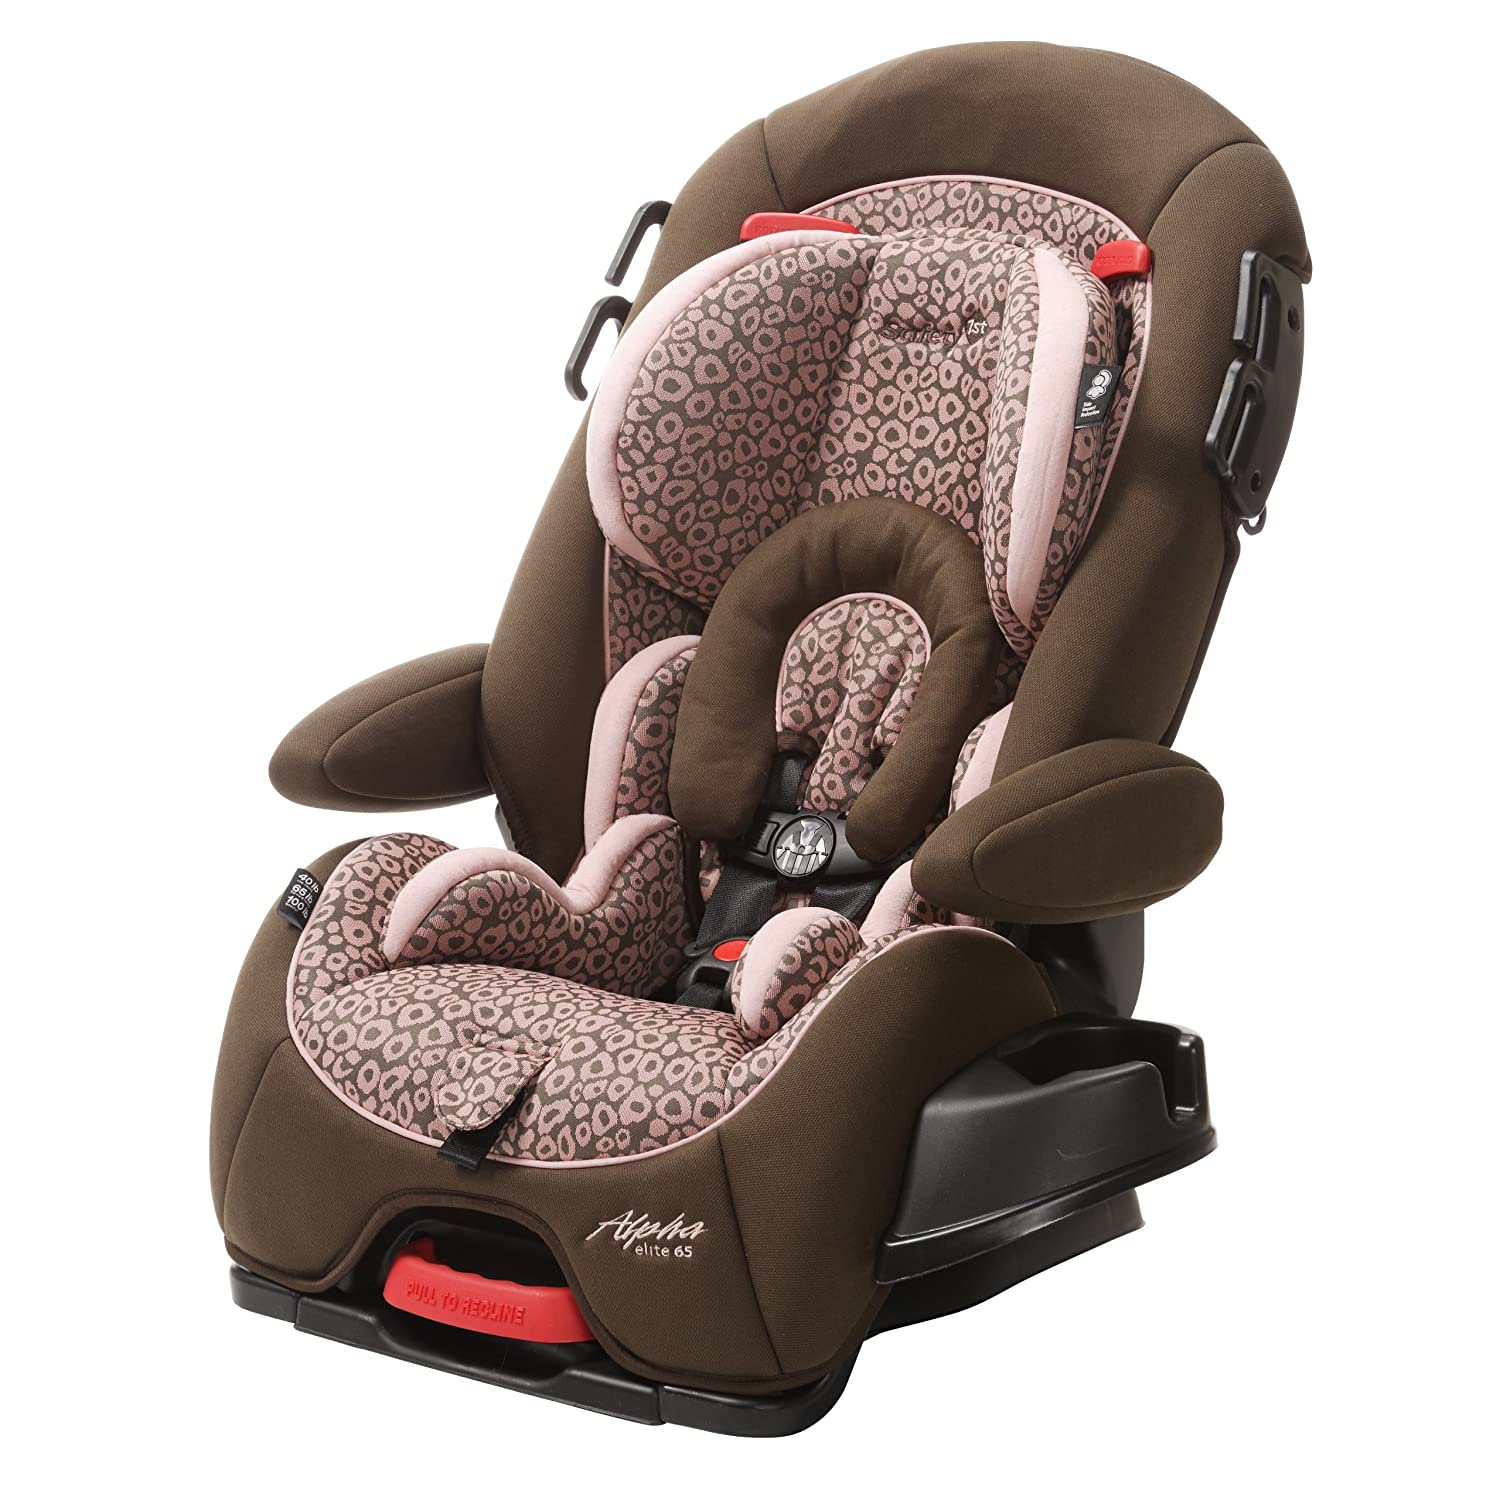 Amazon.com : Safety 1st Alpha Elite 65 Convertible Car Seat, Callie ...